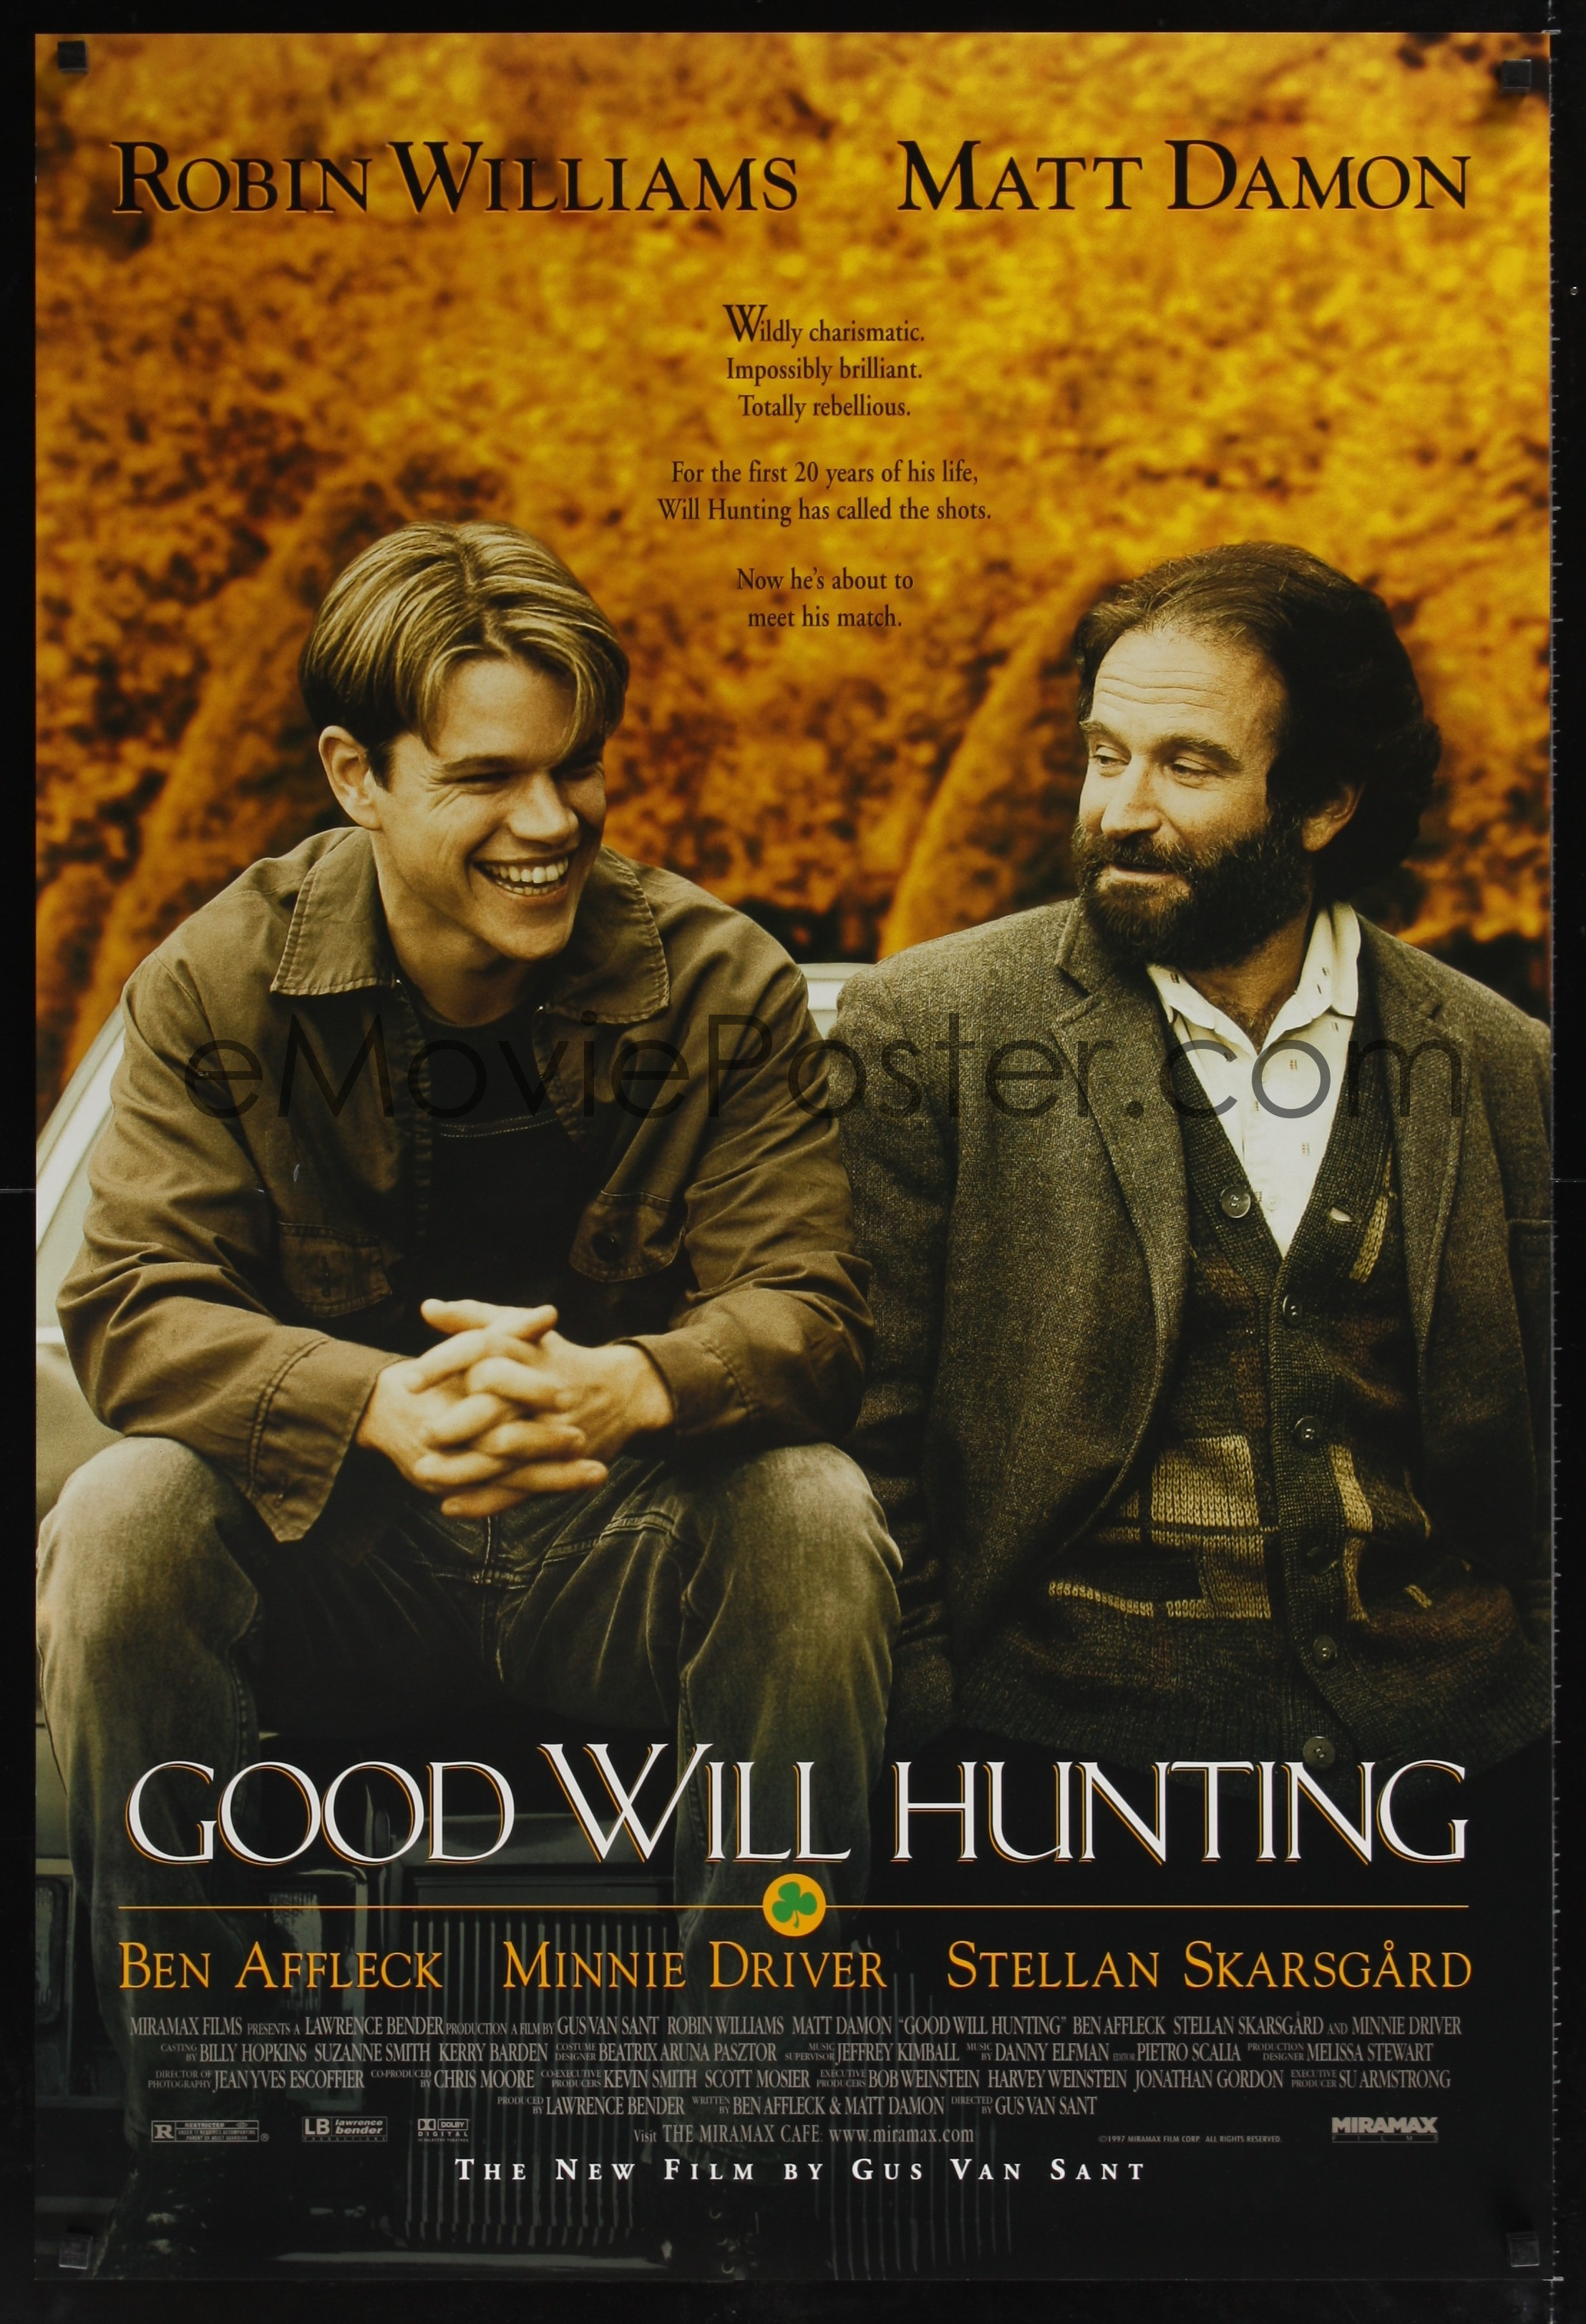 eMoviePoster.com Image For: 0171UF GOOD WILL HUNTING 1sh ... Matt Damon